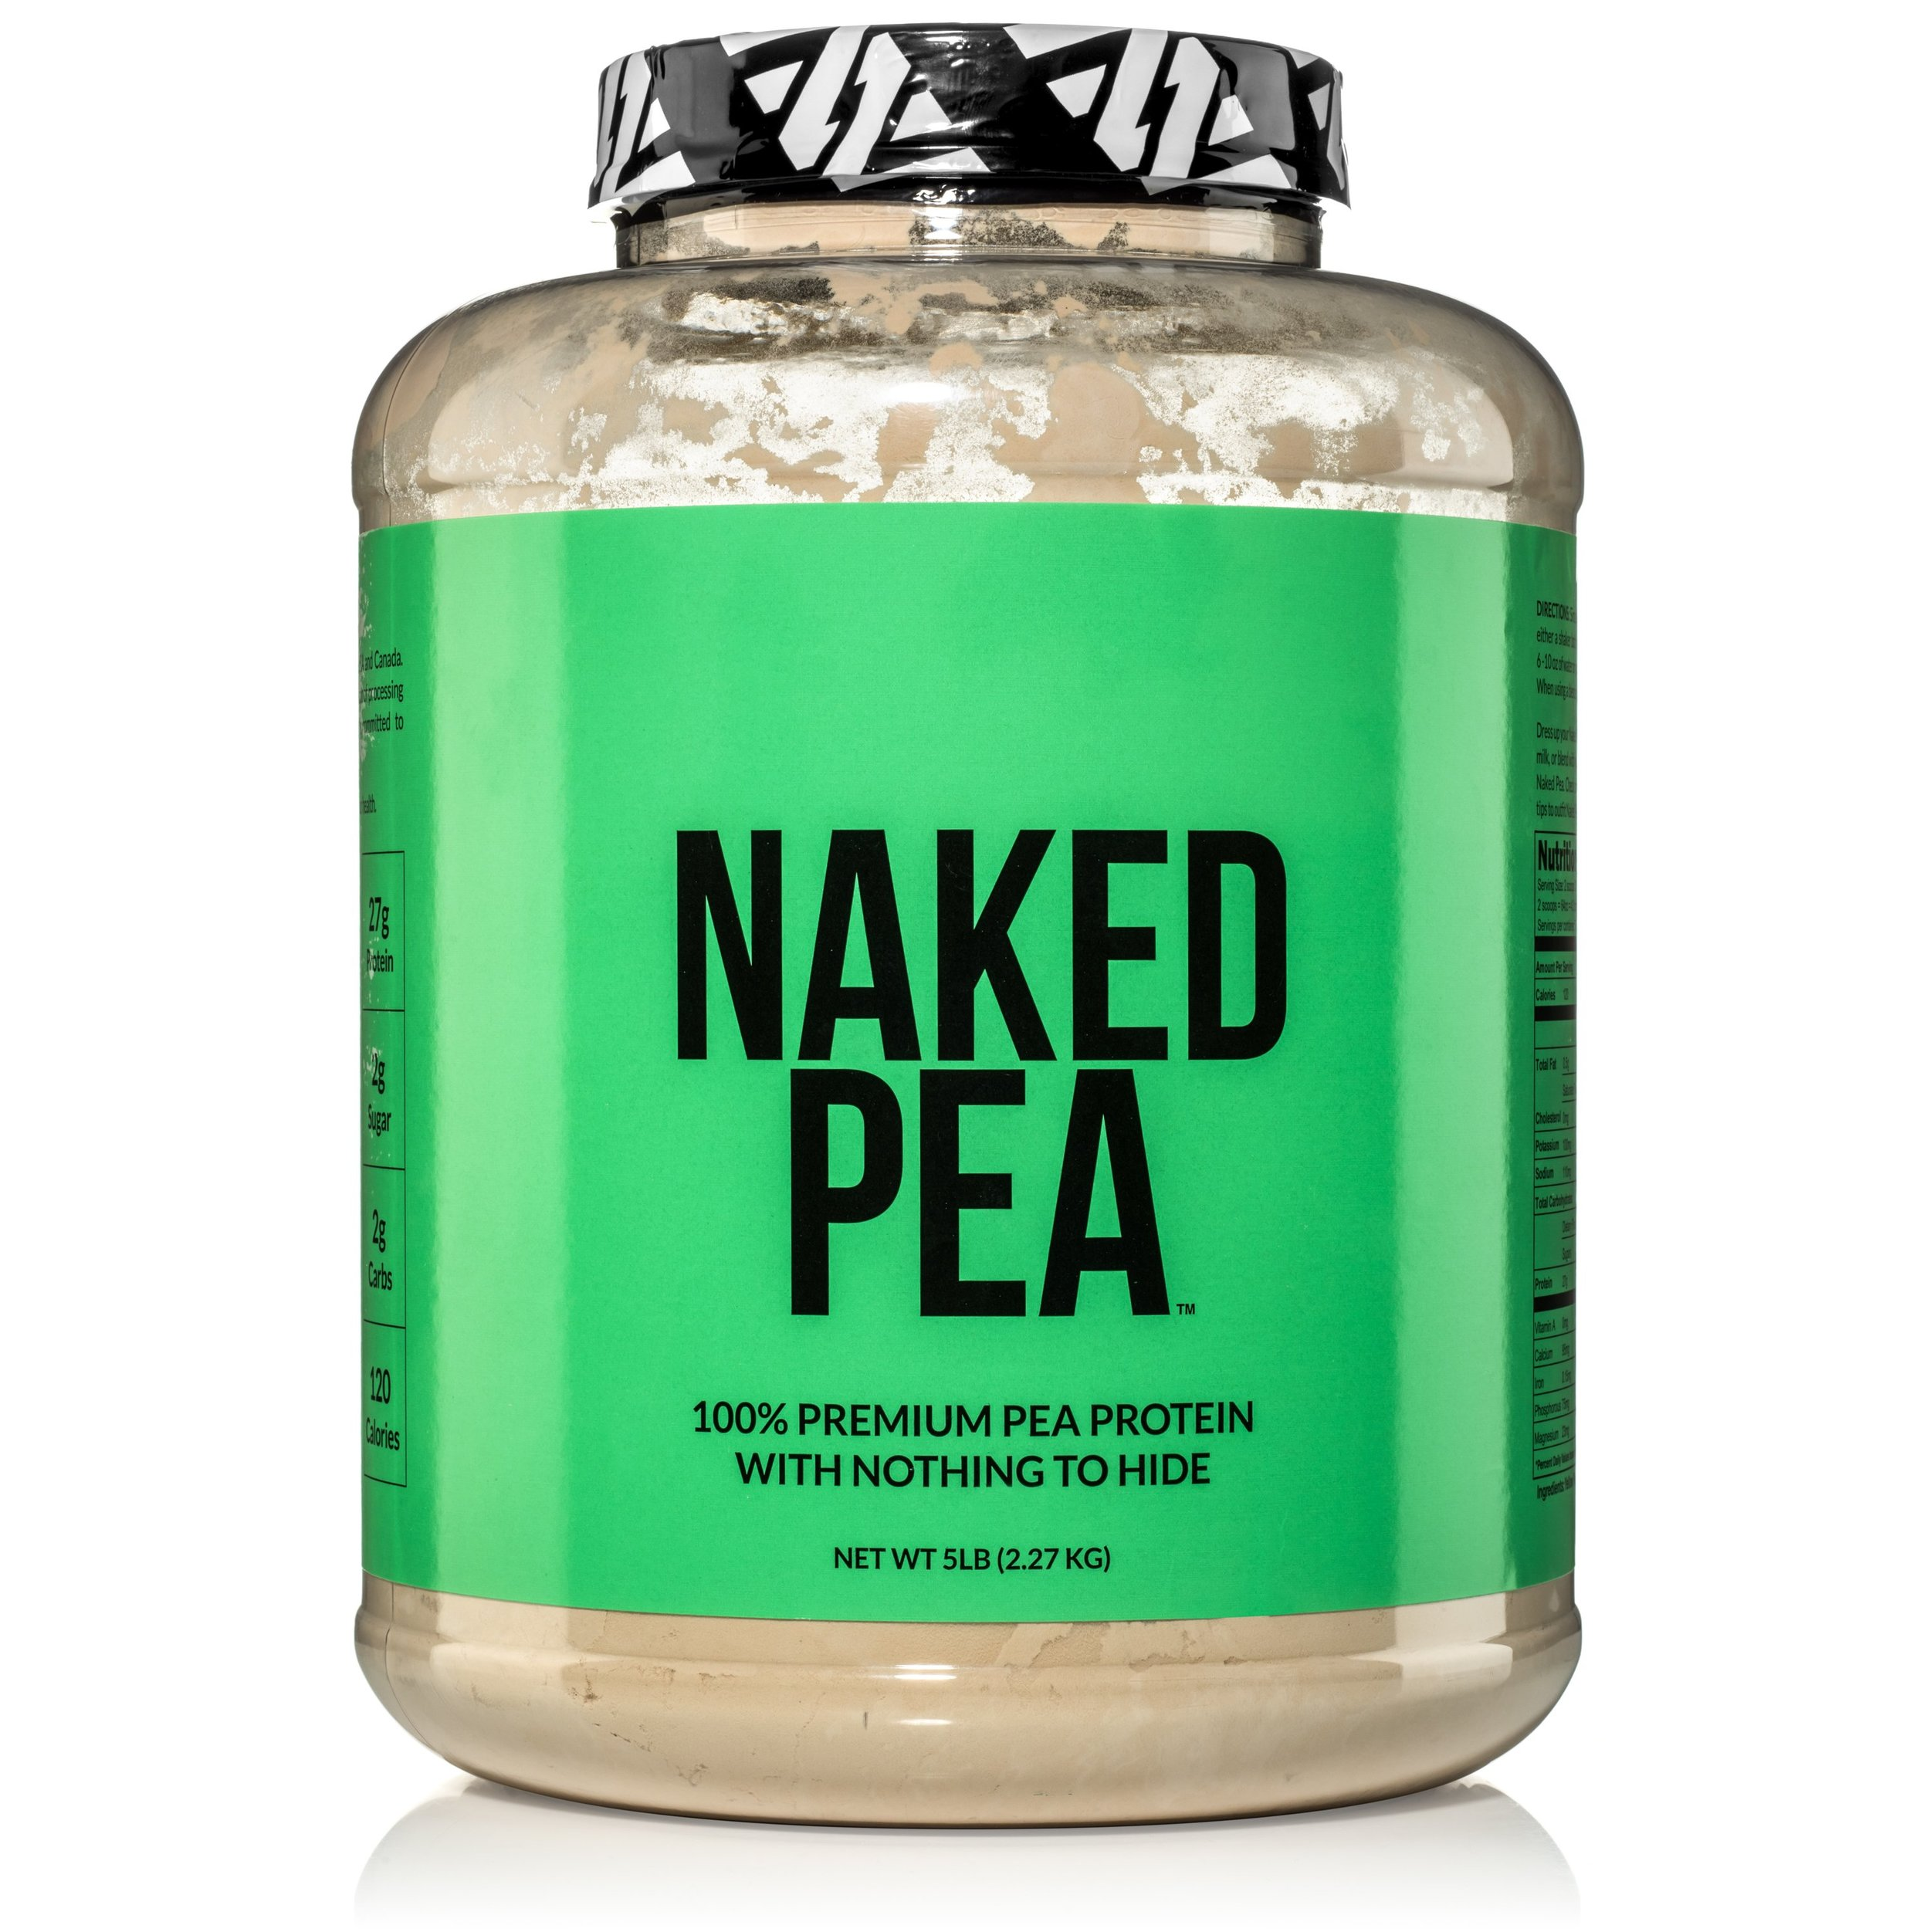 NAKED Pea Protein Powder - - Exclusively from environmentally-friendly farms in the U.S. and Canada- Vegan, non-GMO, soy-free, gluten-free, and dairy-free- No artificial sweeteners, flavors, or colors▶️ to choose a flavor, click on one of the options below:🥦 Unflavored🌱 Vanilla🍫 Chocolate